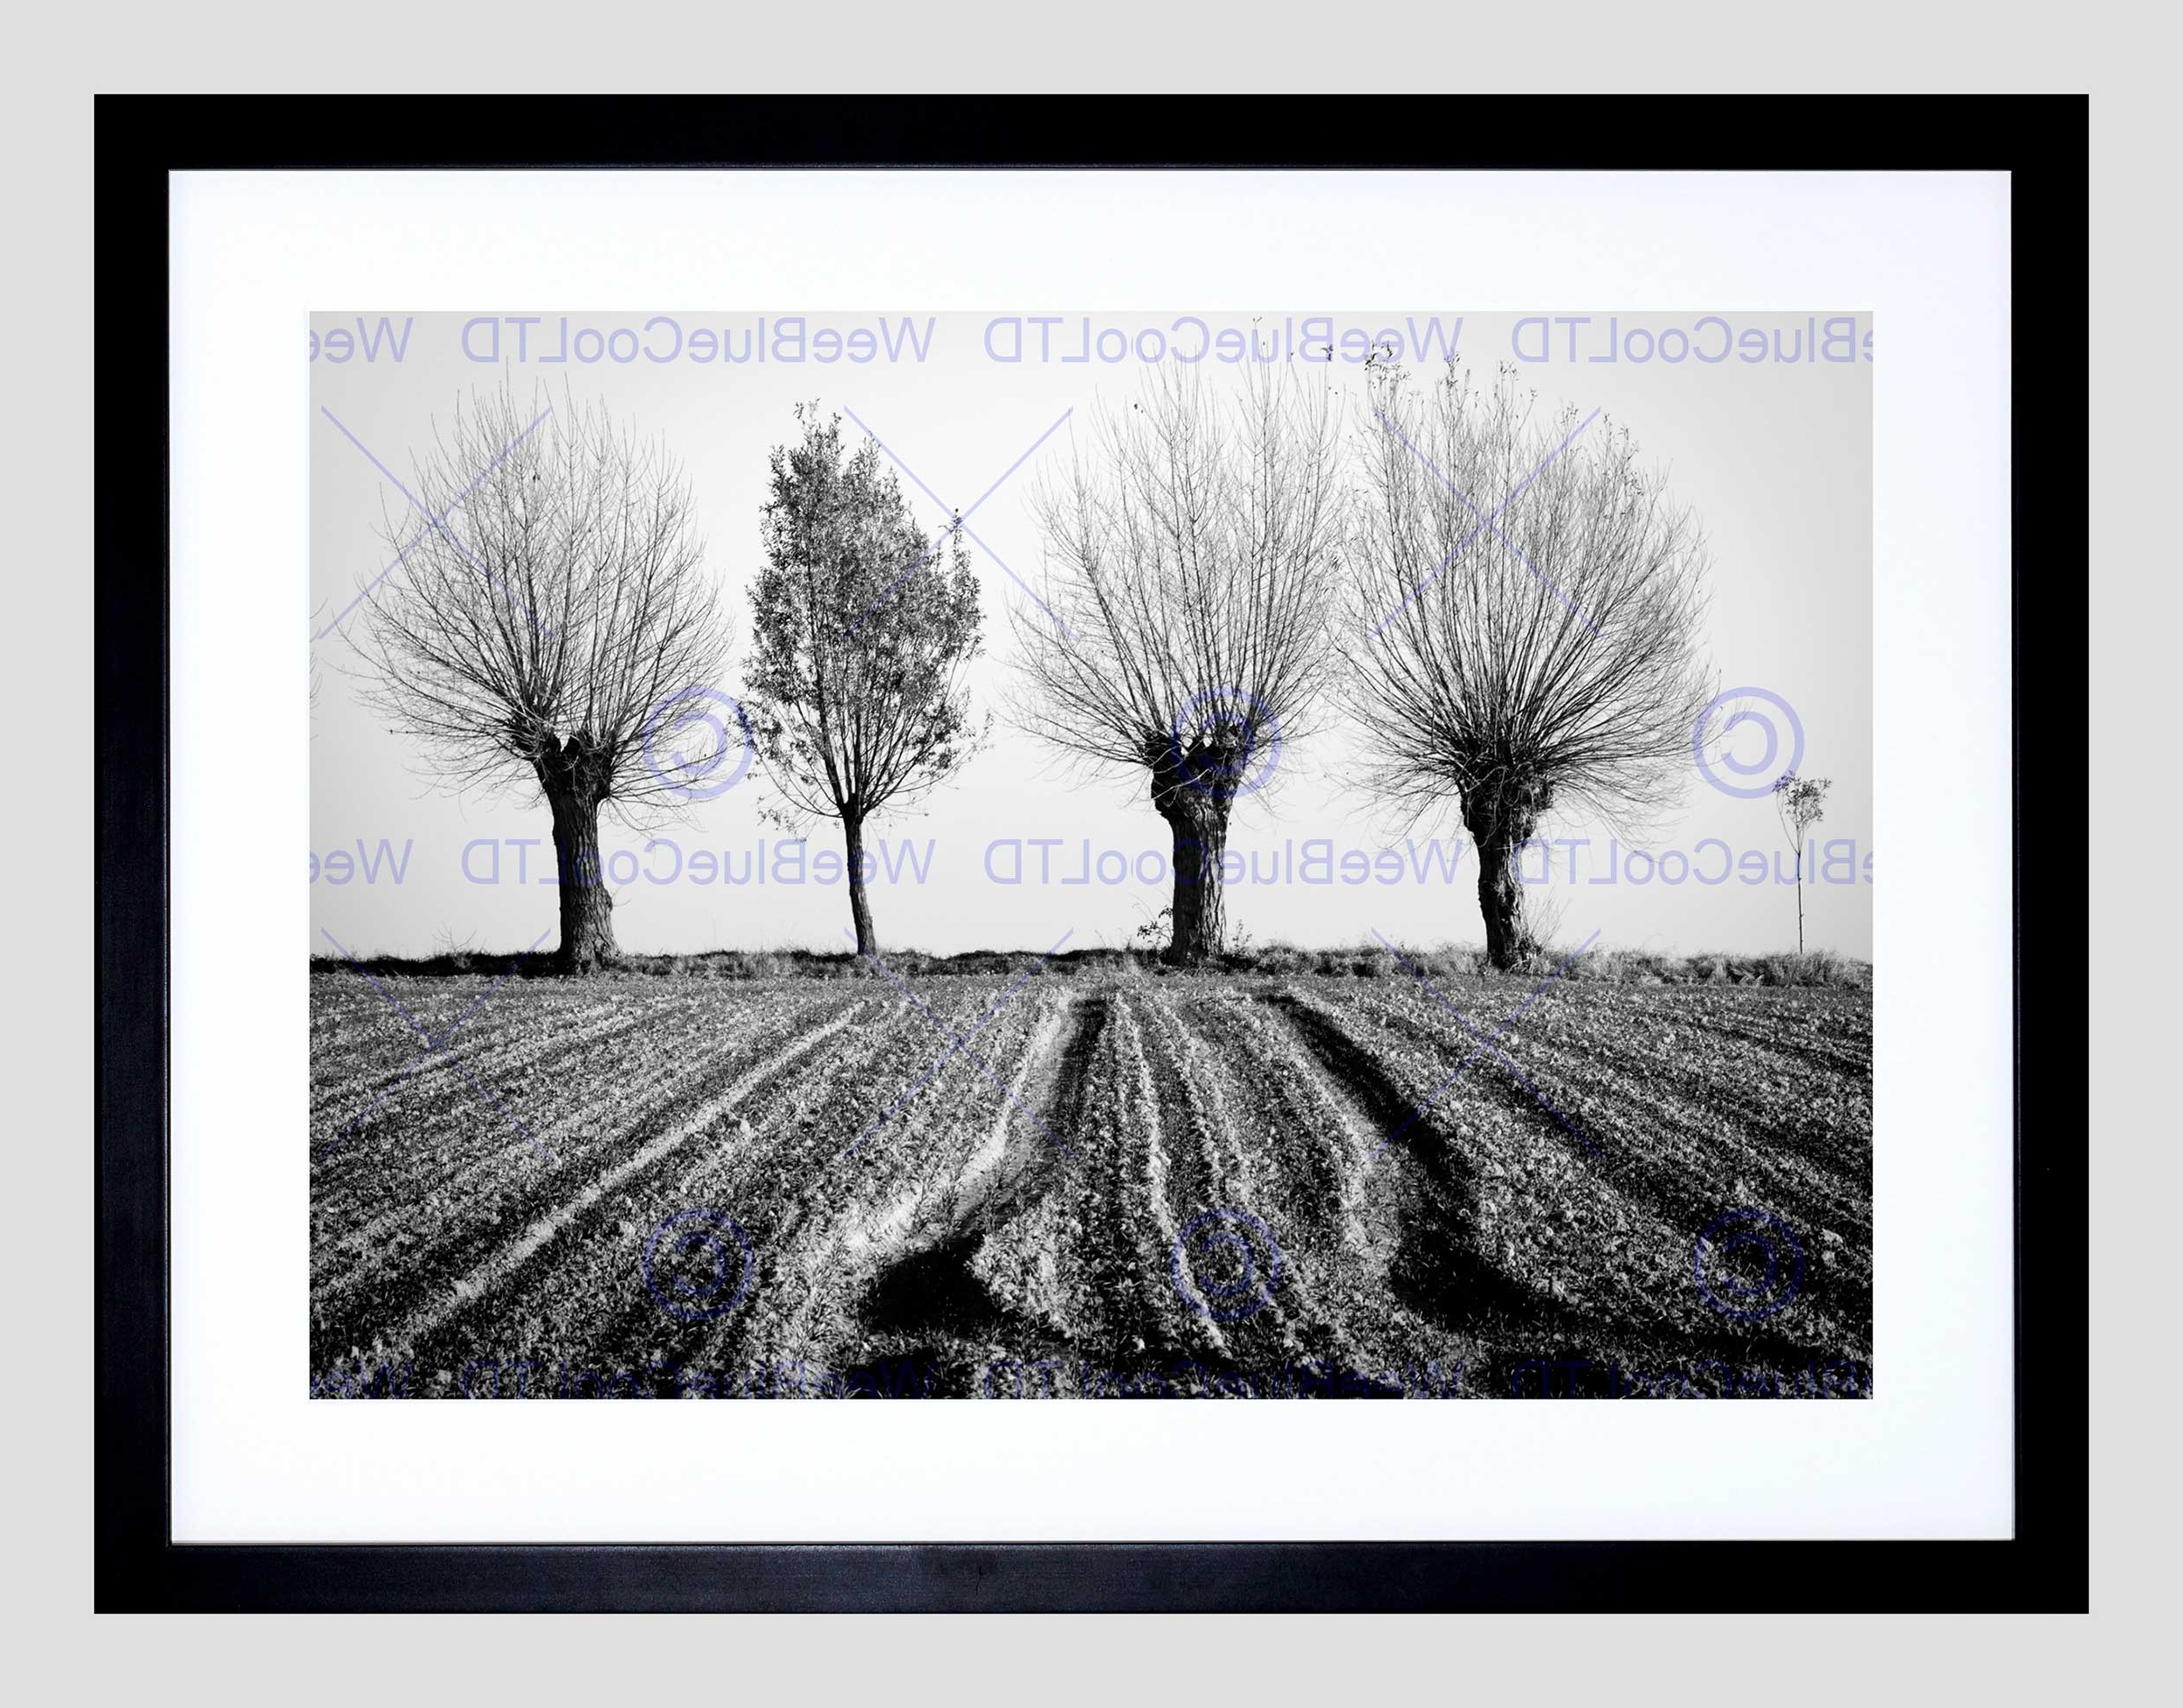 Black And White Framed Art Prints Regarding Famous Trees Horizon Black White Black Frame Framed Art Print Picture (View 5 of 15)